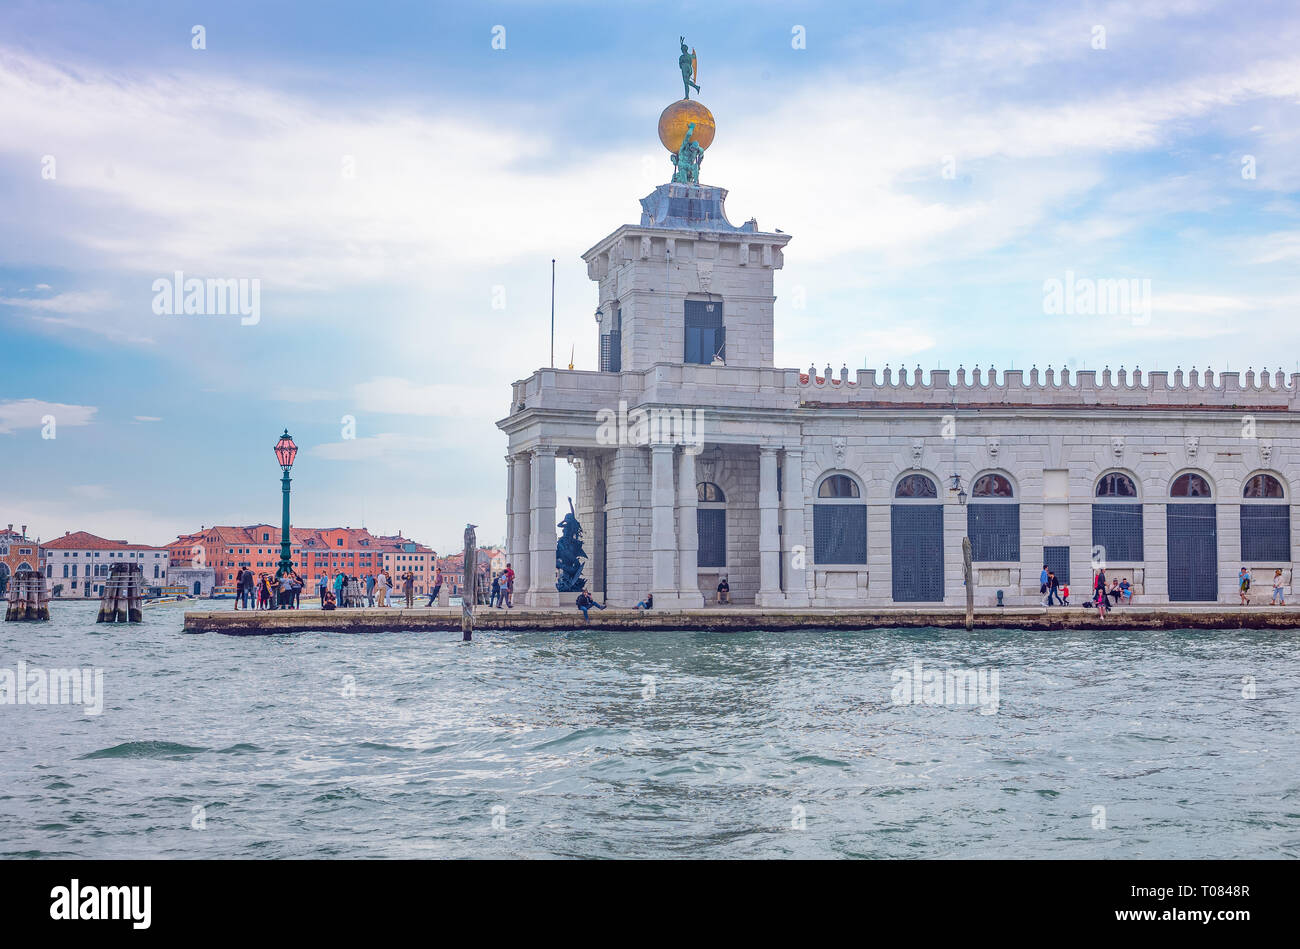 Italy, Venice, The Punta Della Dogana seen from the Creat Canal - Stock Image